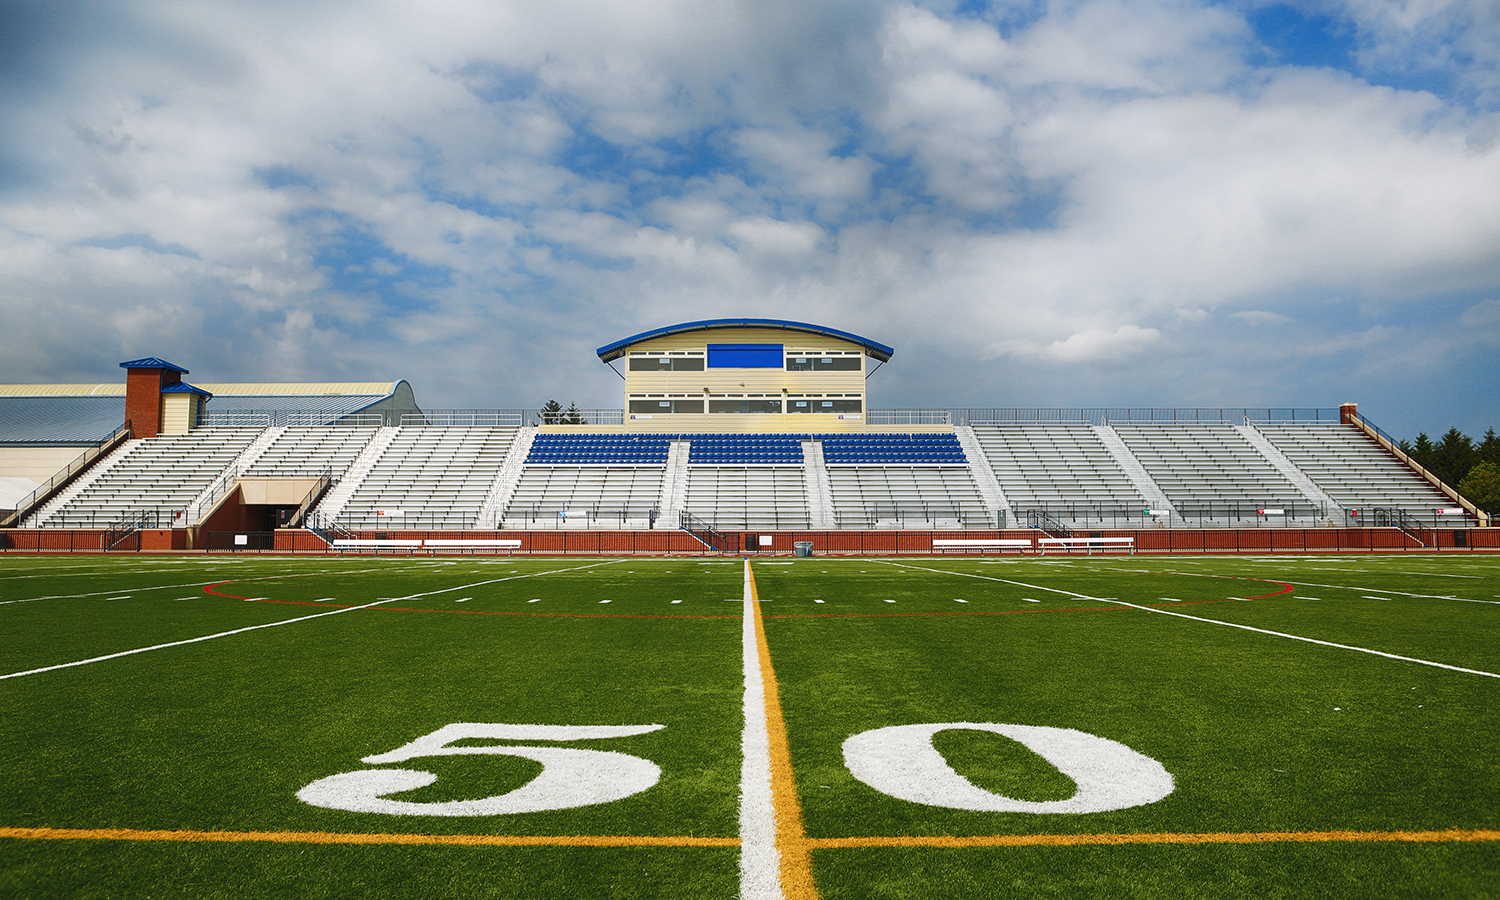 "Boswell Field, adjacent to the Caird Center for Athletics and its facilities (including the Bristol Field House), was built in this location in 1972 and renovated in 2010 with FieldTurf and a new lighting system. During the school year, ""The Boz"" hosts home games and playoff games in football, lacrosse and soccer."